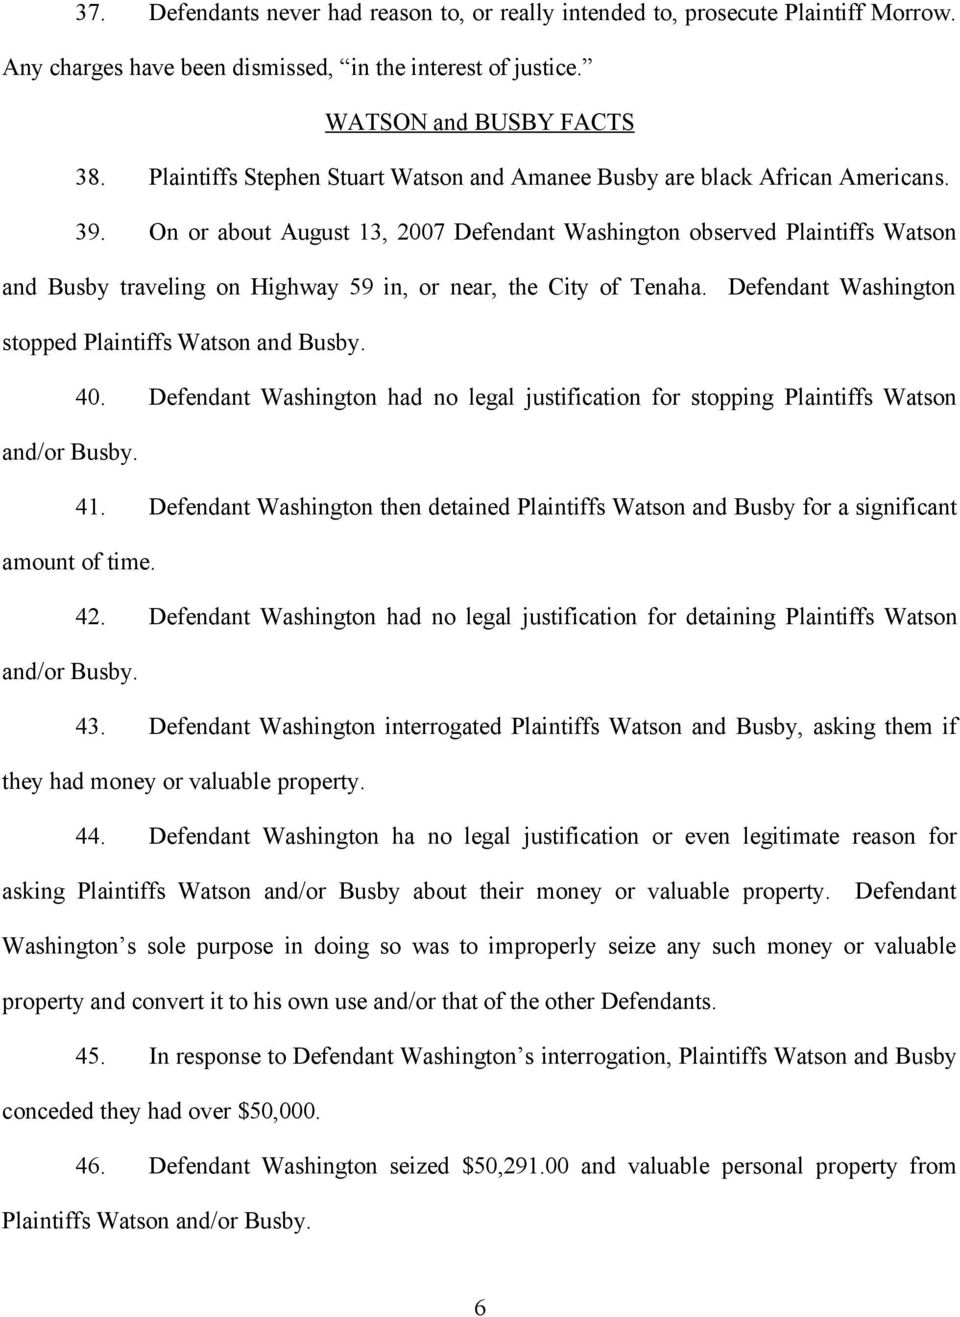 On or about August 13, 2007 Defendant Washington observed Plaintiffs Watson and Busby traveling on Highway 59 in, or near, the City of Tenaha. Defendant Washington stopped Plaintiffs Watson and Busby.